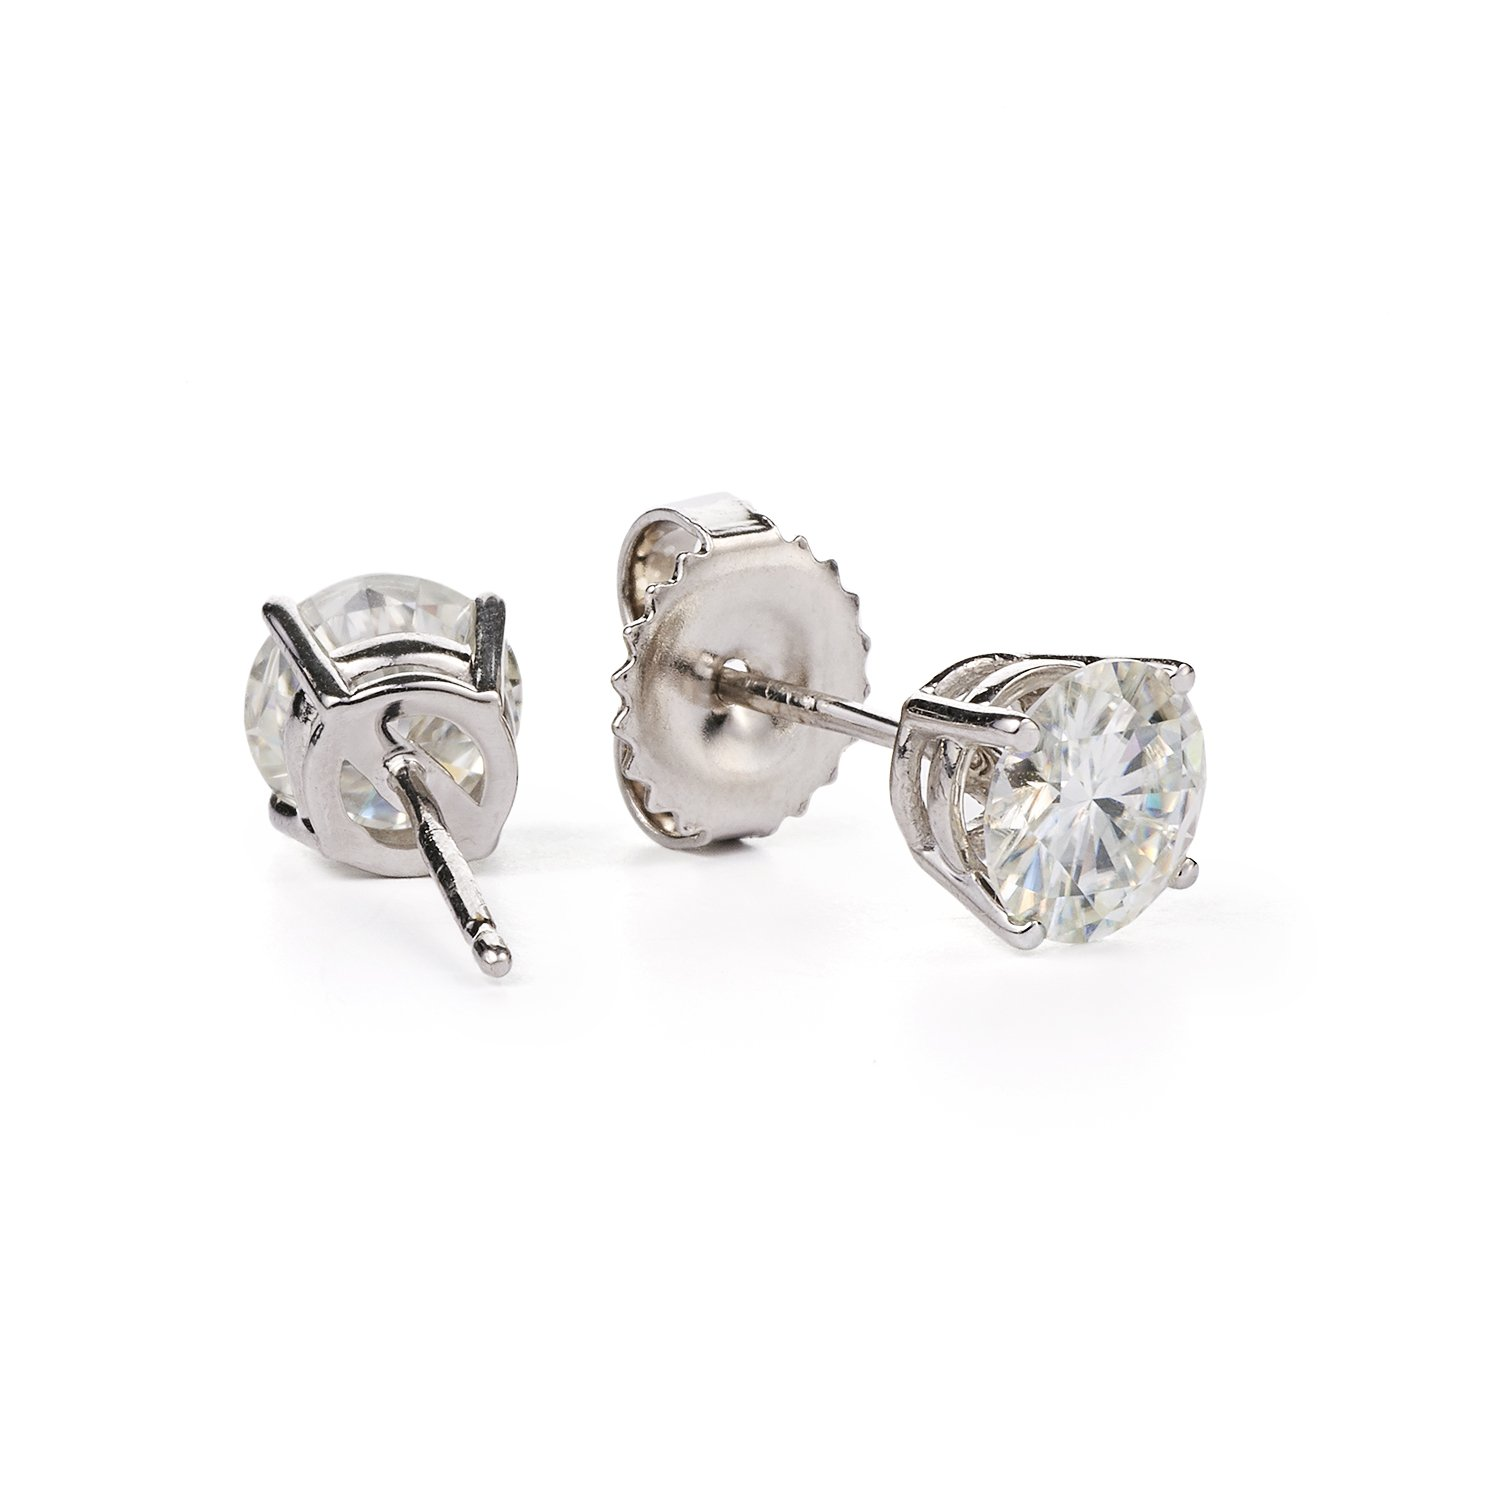 Forever Classic Round Brilliant Cut Moissanite Stud Earrings by Charles Colvard